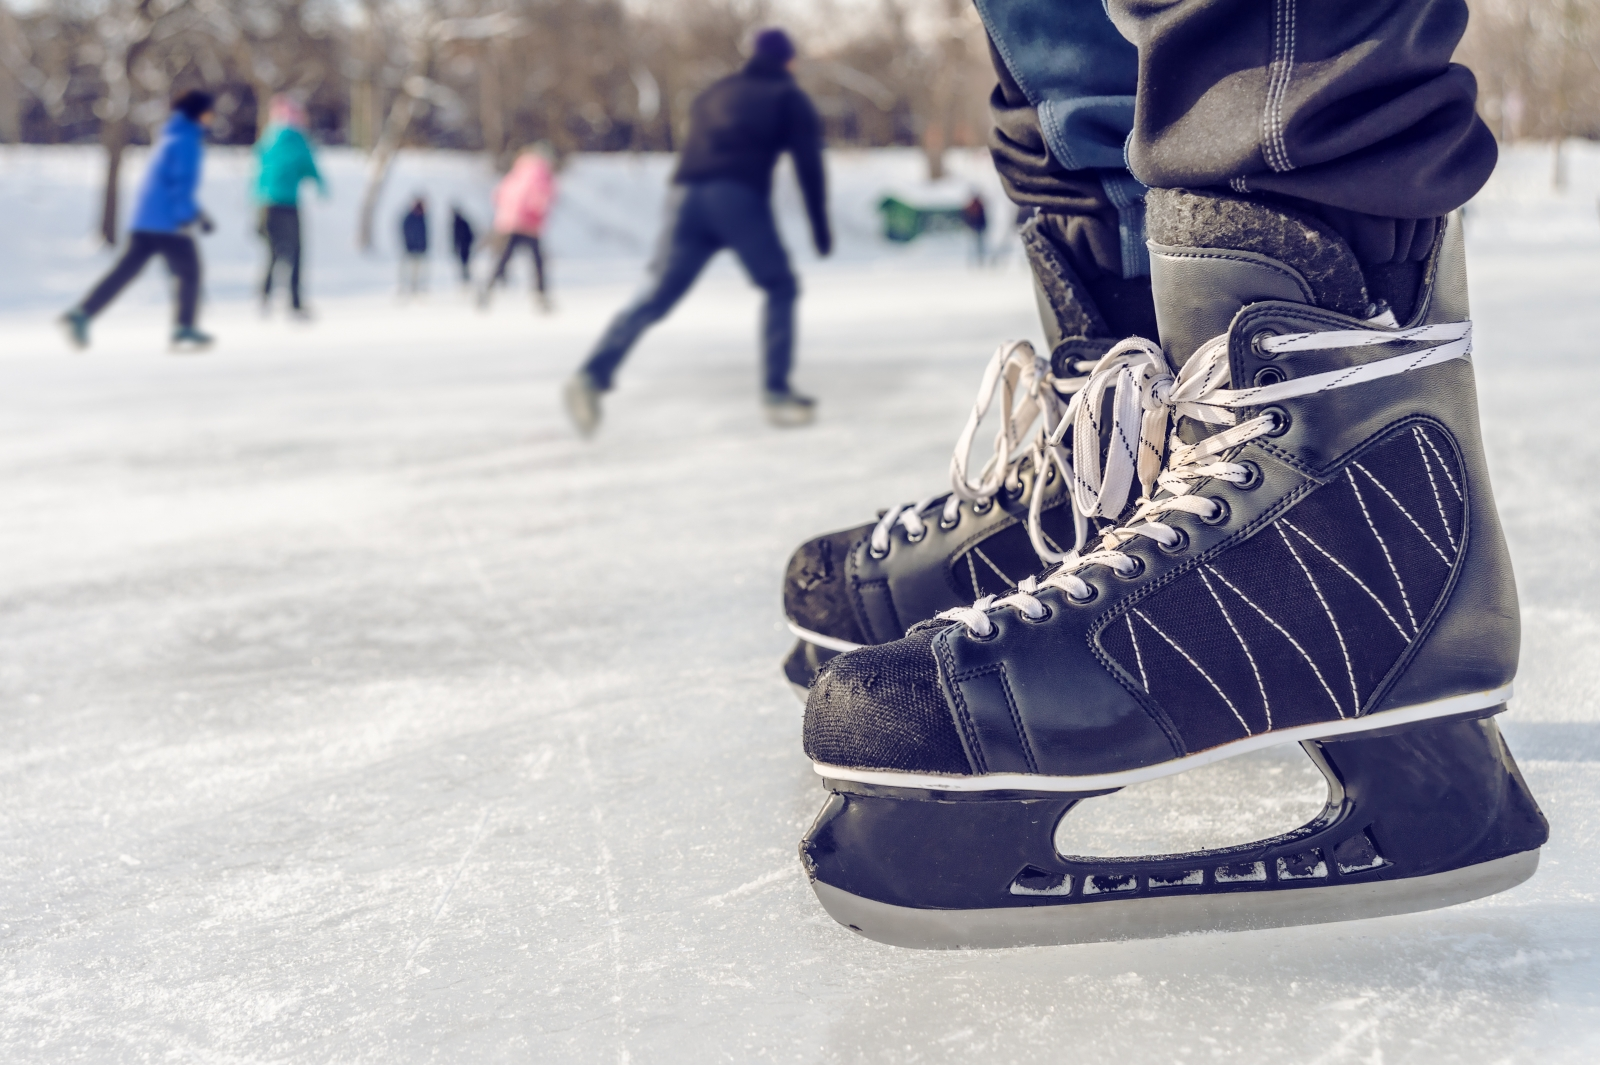 A hockey skater stands on the ice outside. Photo by mbruxelle/Fotolia.